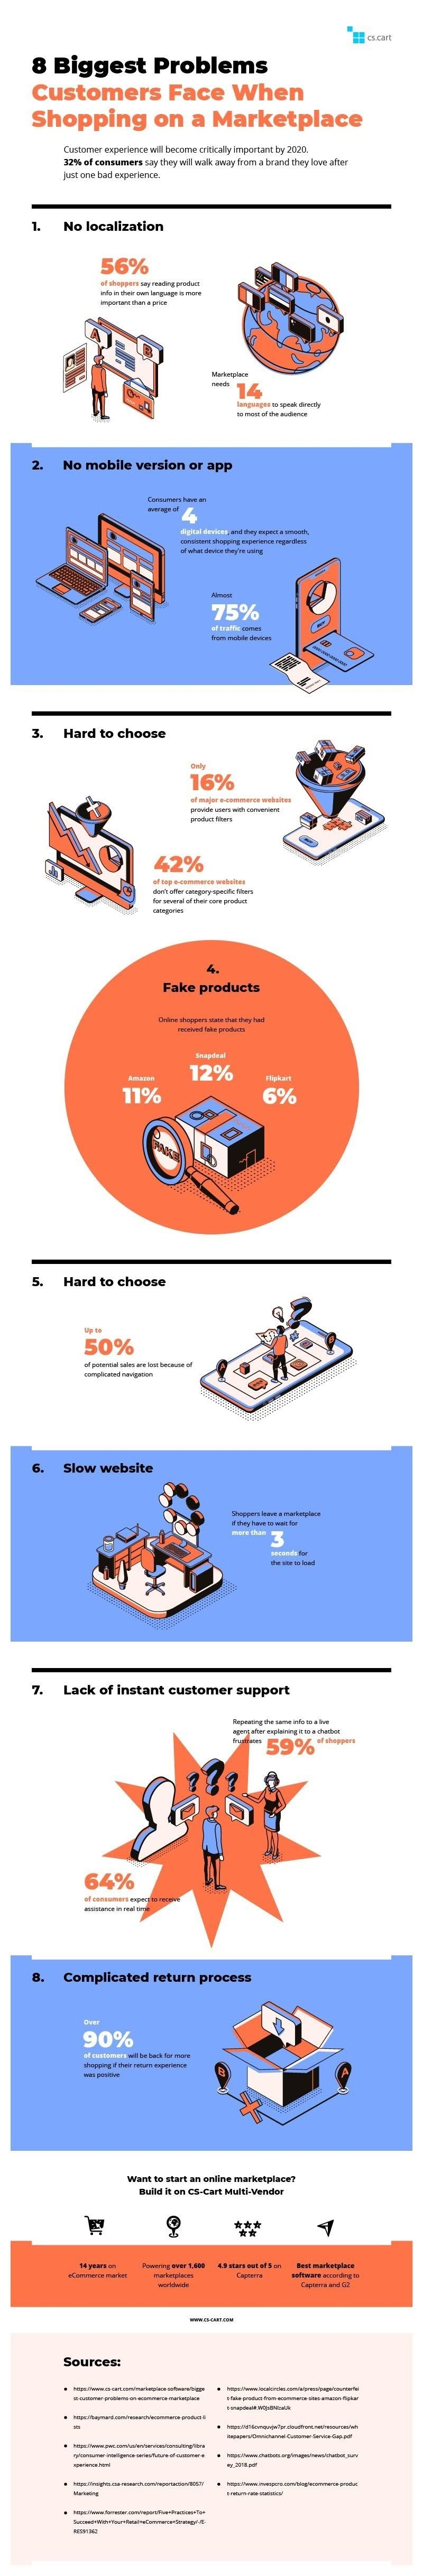 8 Biggest Problems Customers Face on eCommerce Marketplaces #infographic